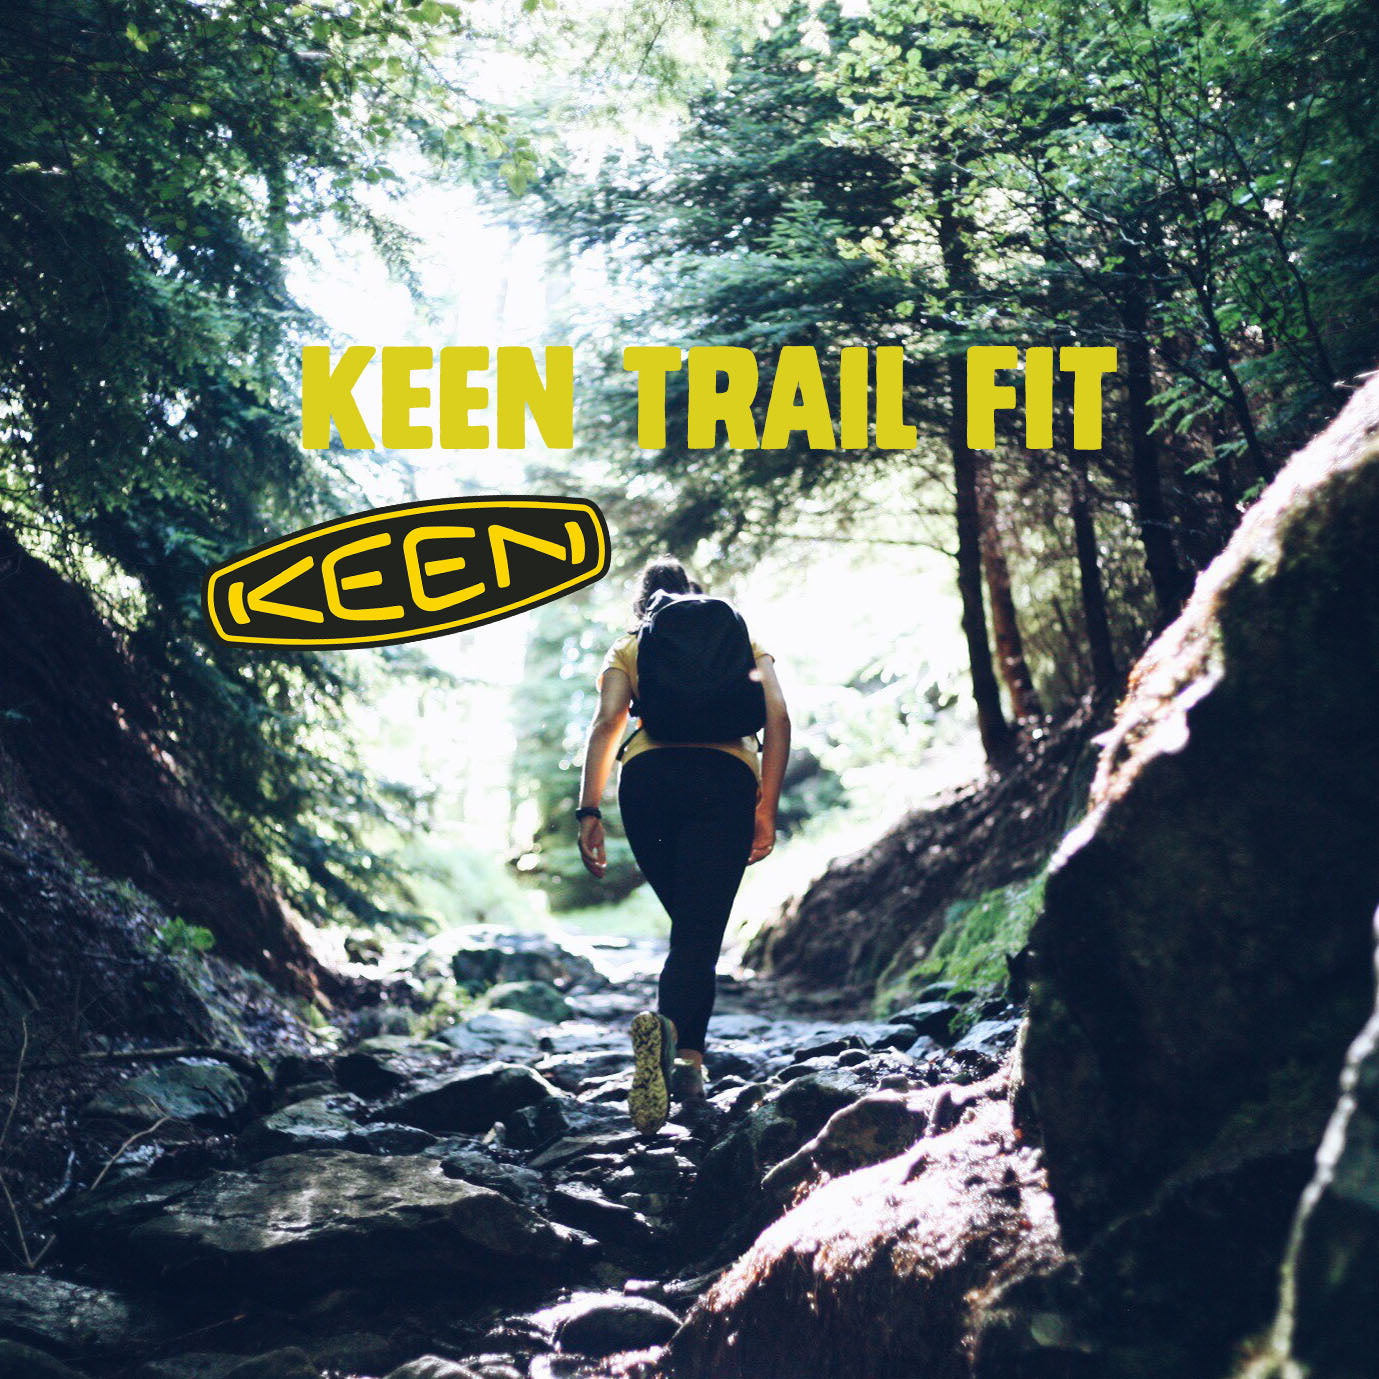 Image for article Trail fit with Keen. Find out more...